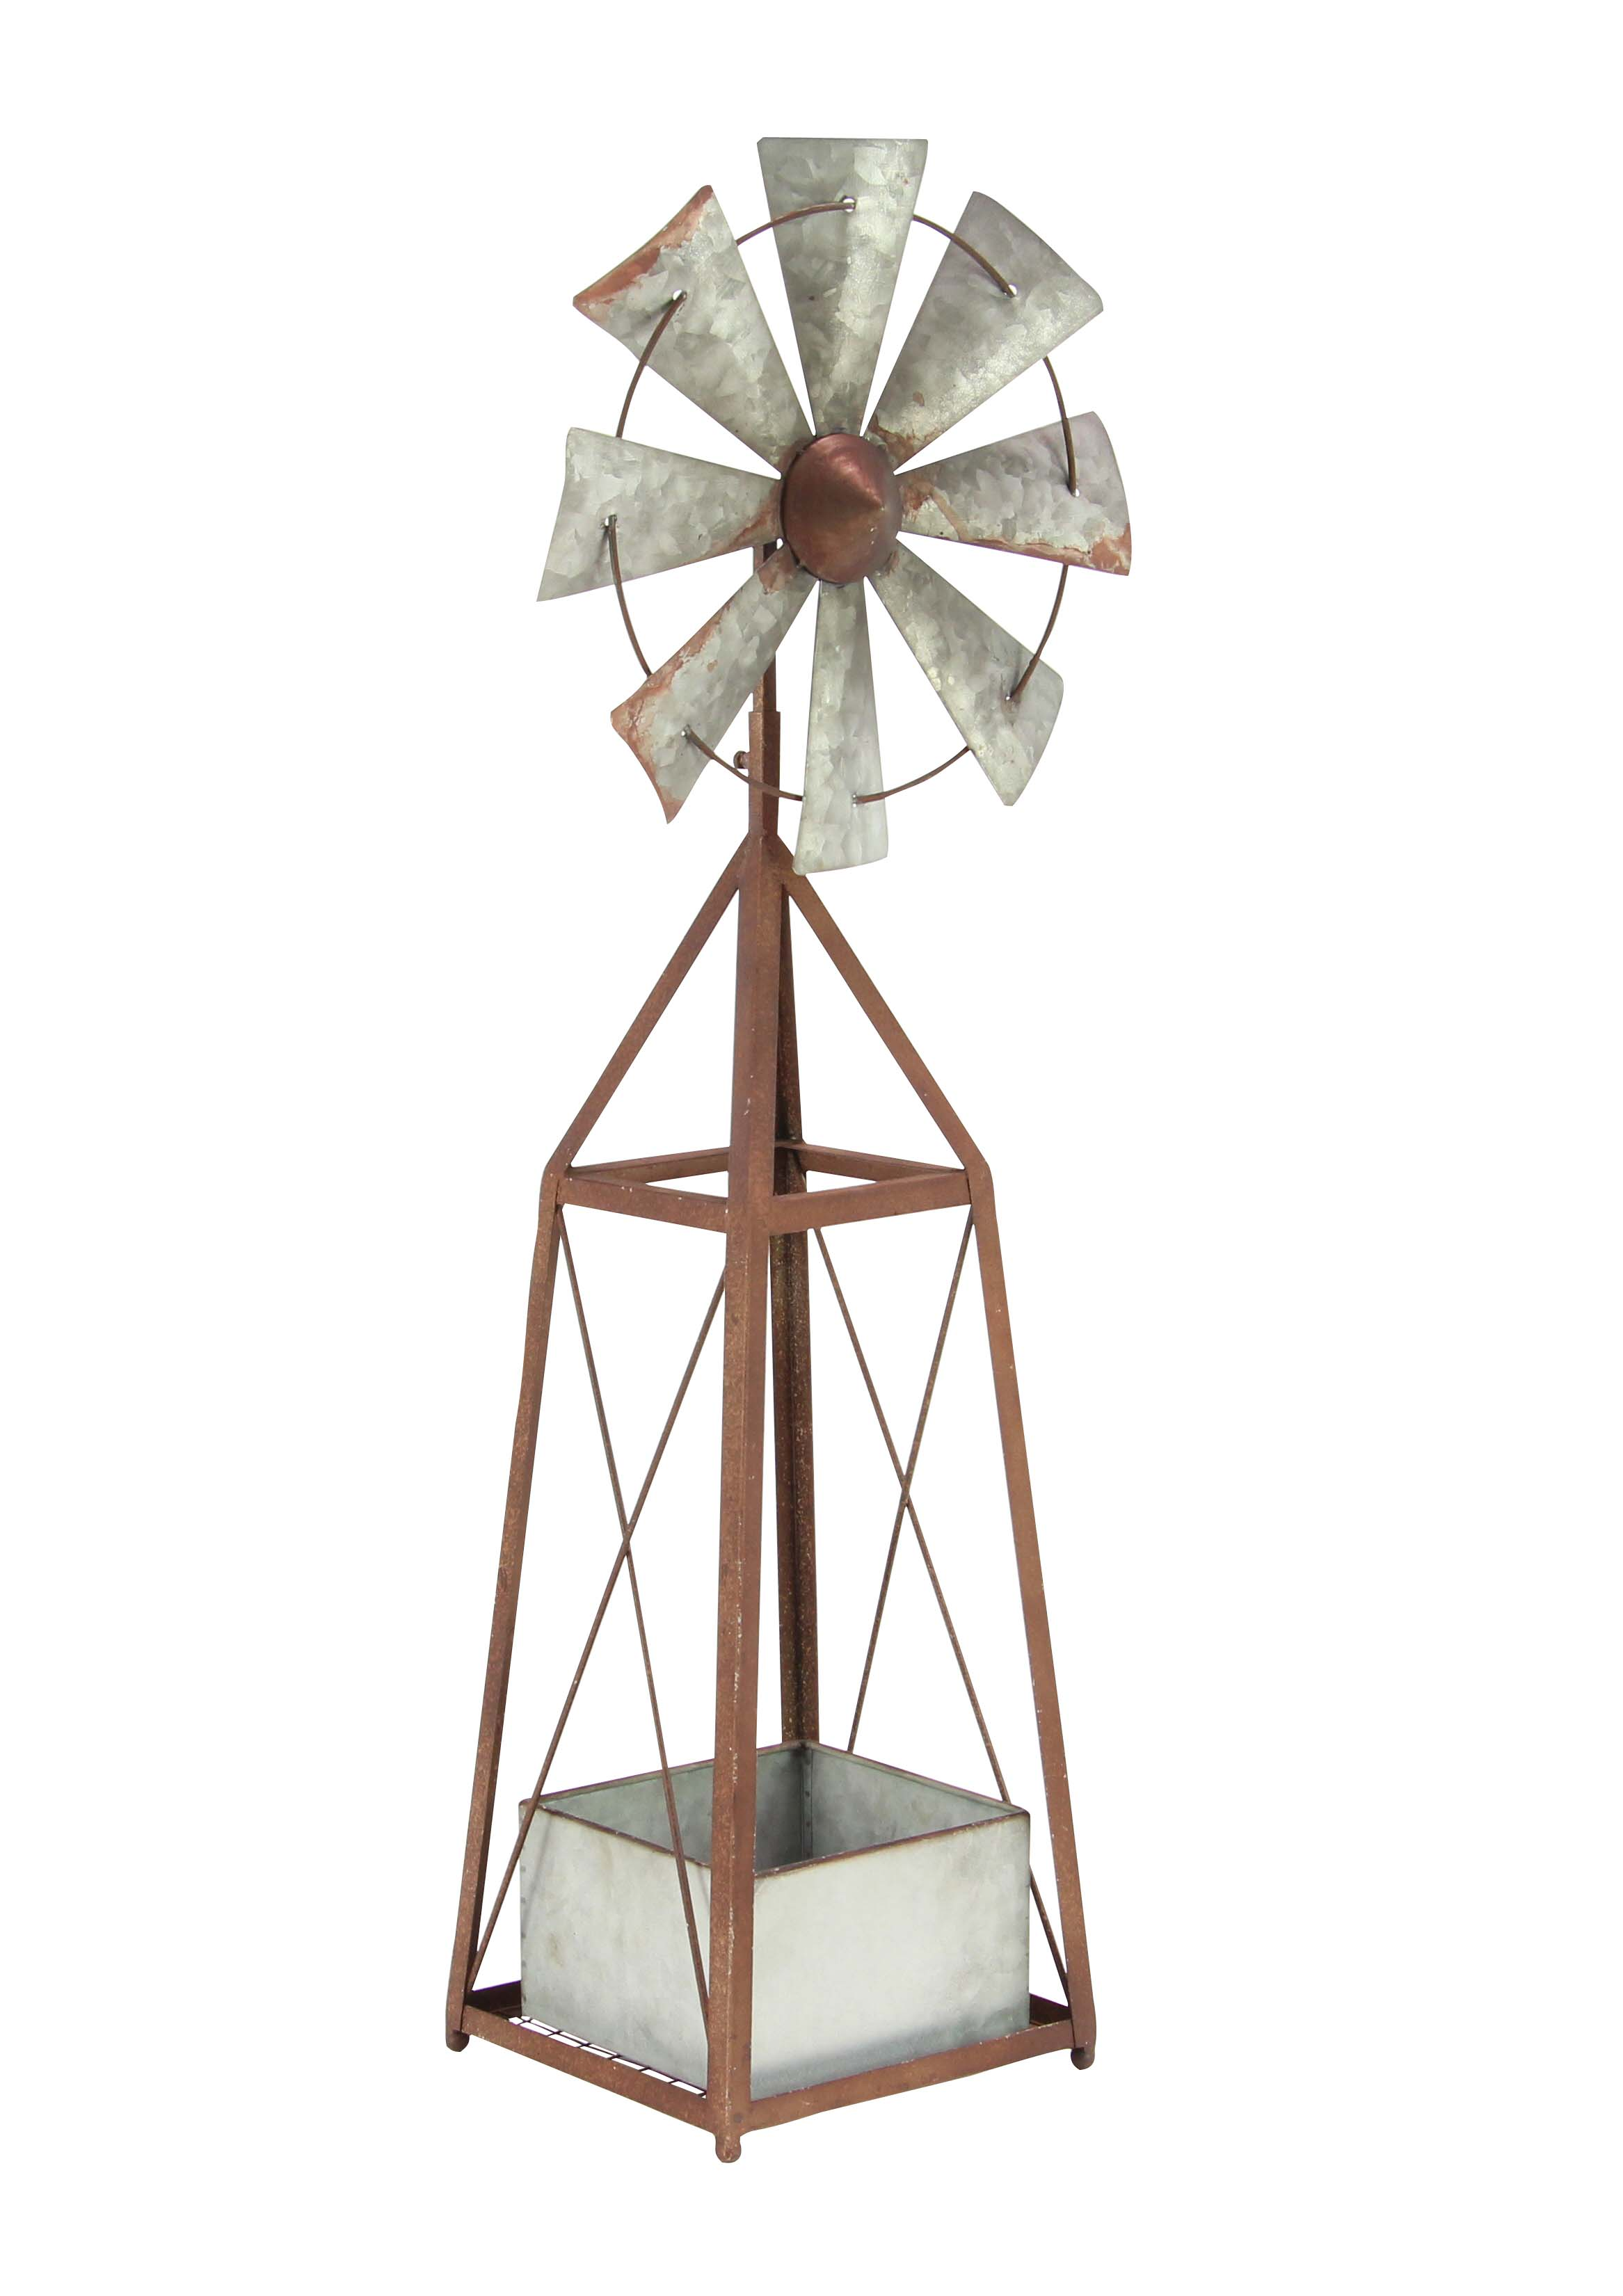 Decmode 39 Inch Farmhouse Iron Windmill Planter, Brown by DecMode